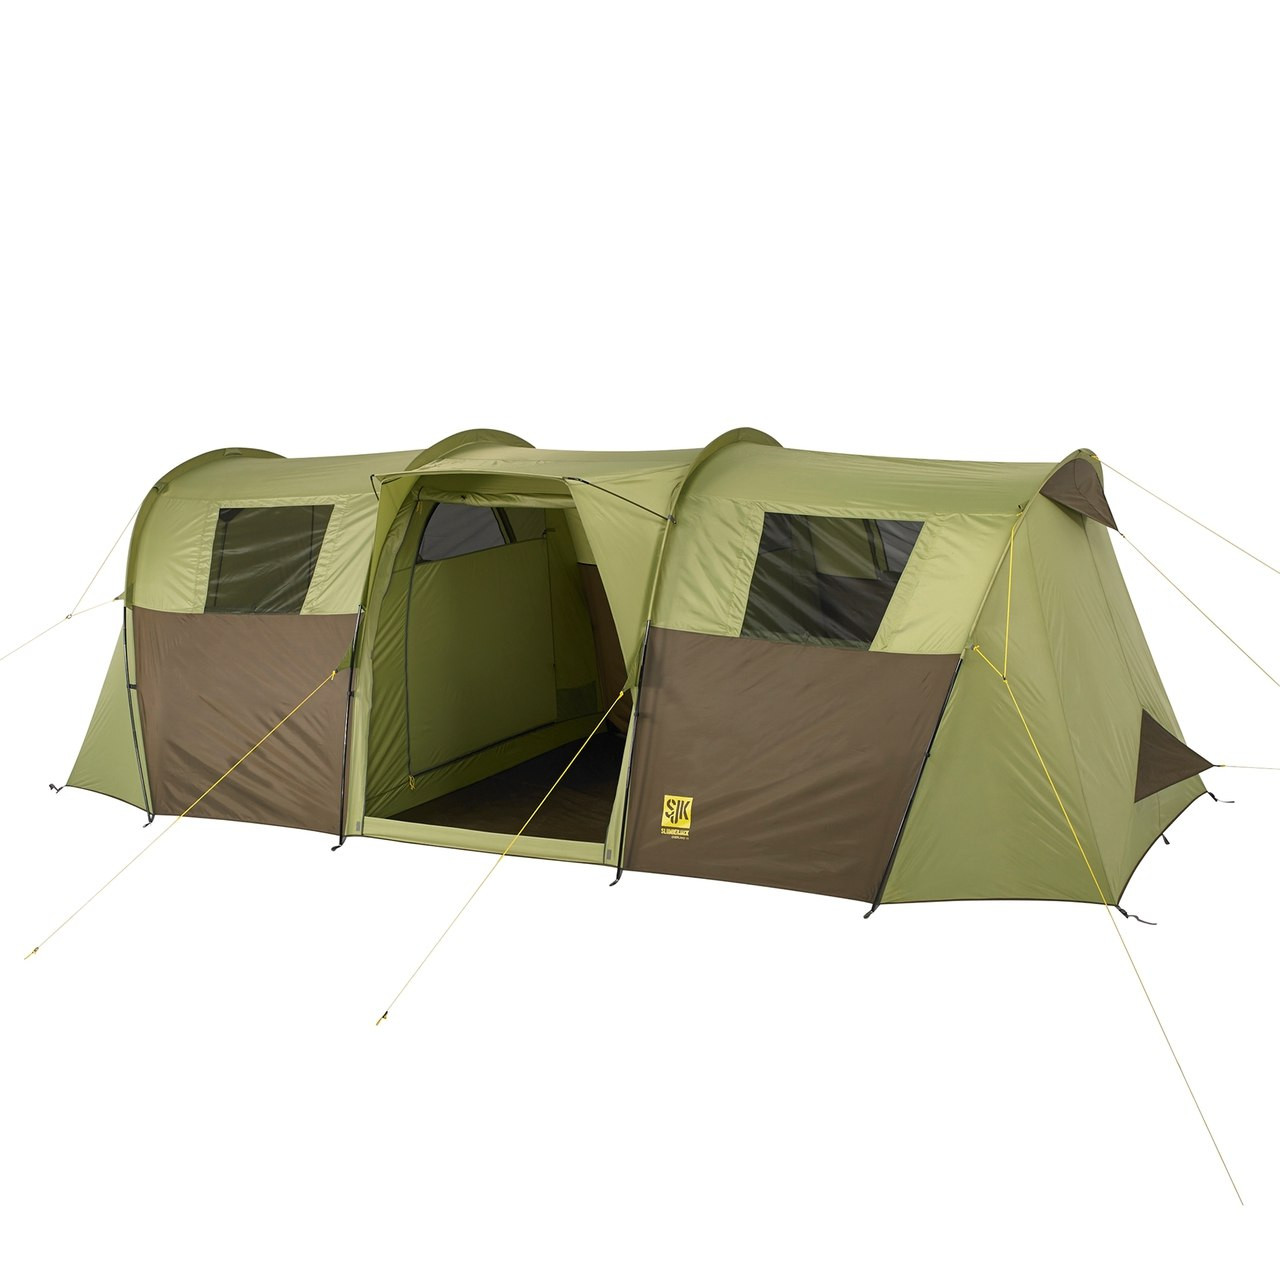 ... Overland 10-Person Tent. Image 1  sc 1 st  Slumberjack : ten person tents - memphite.com